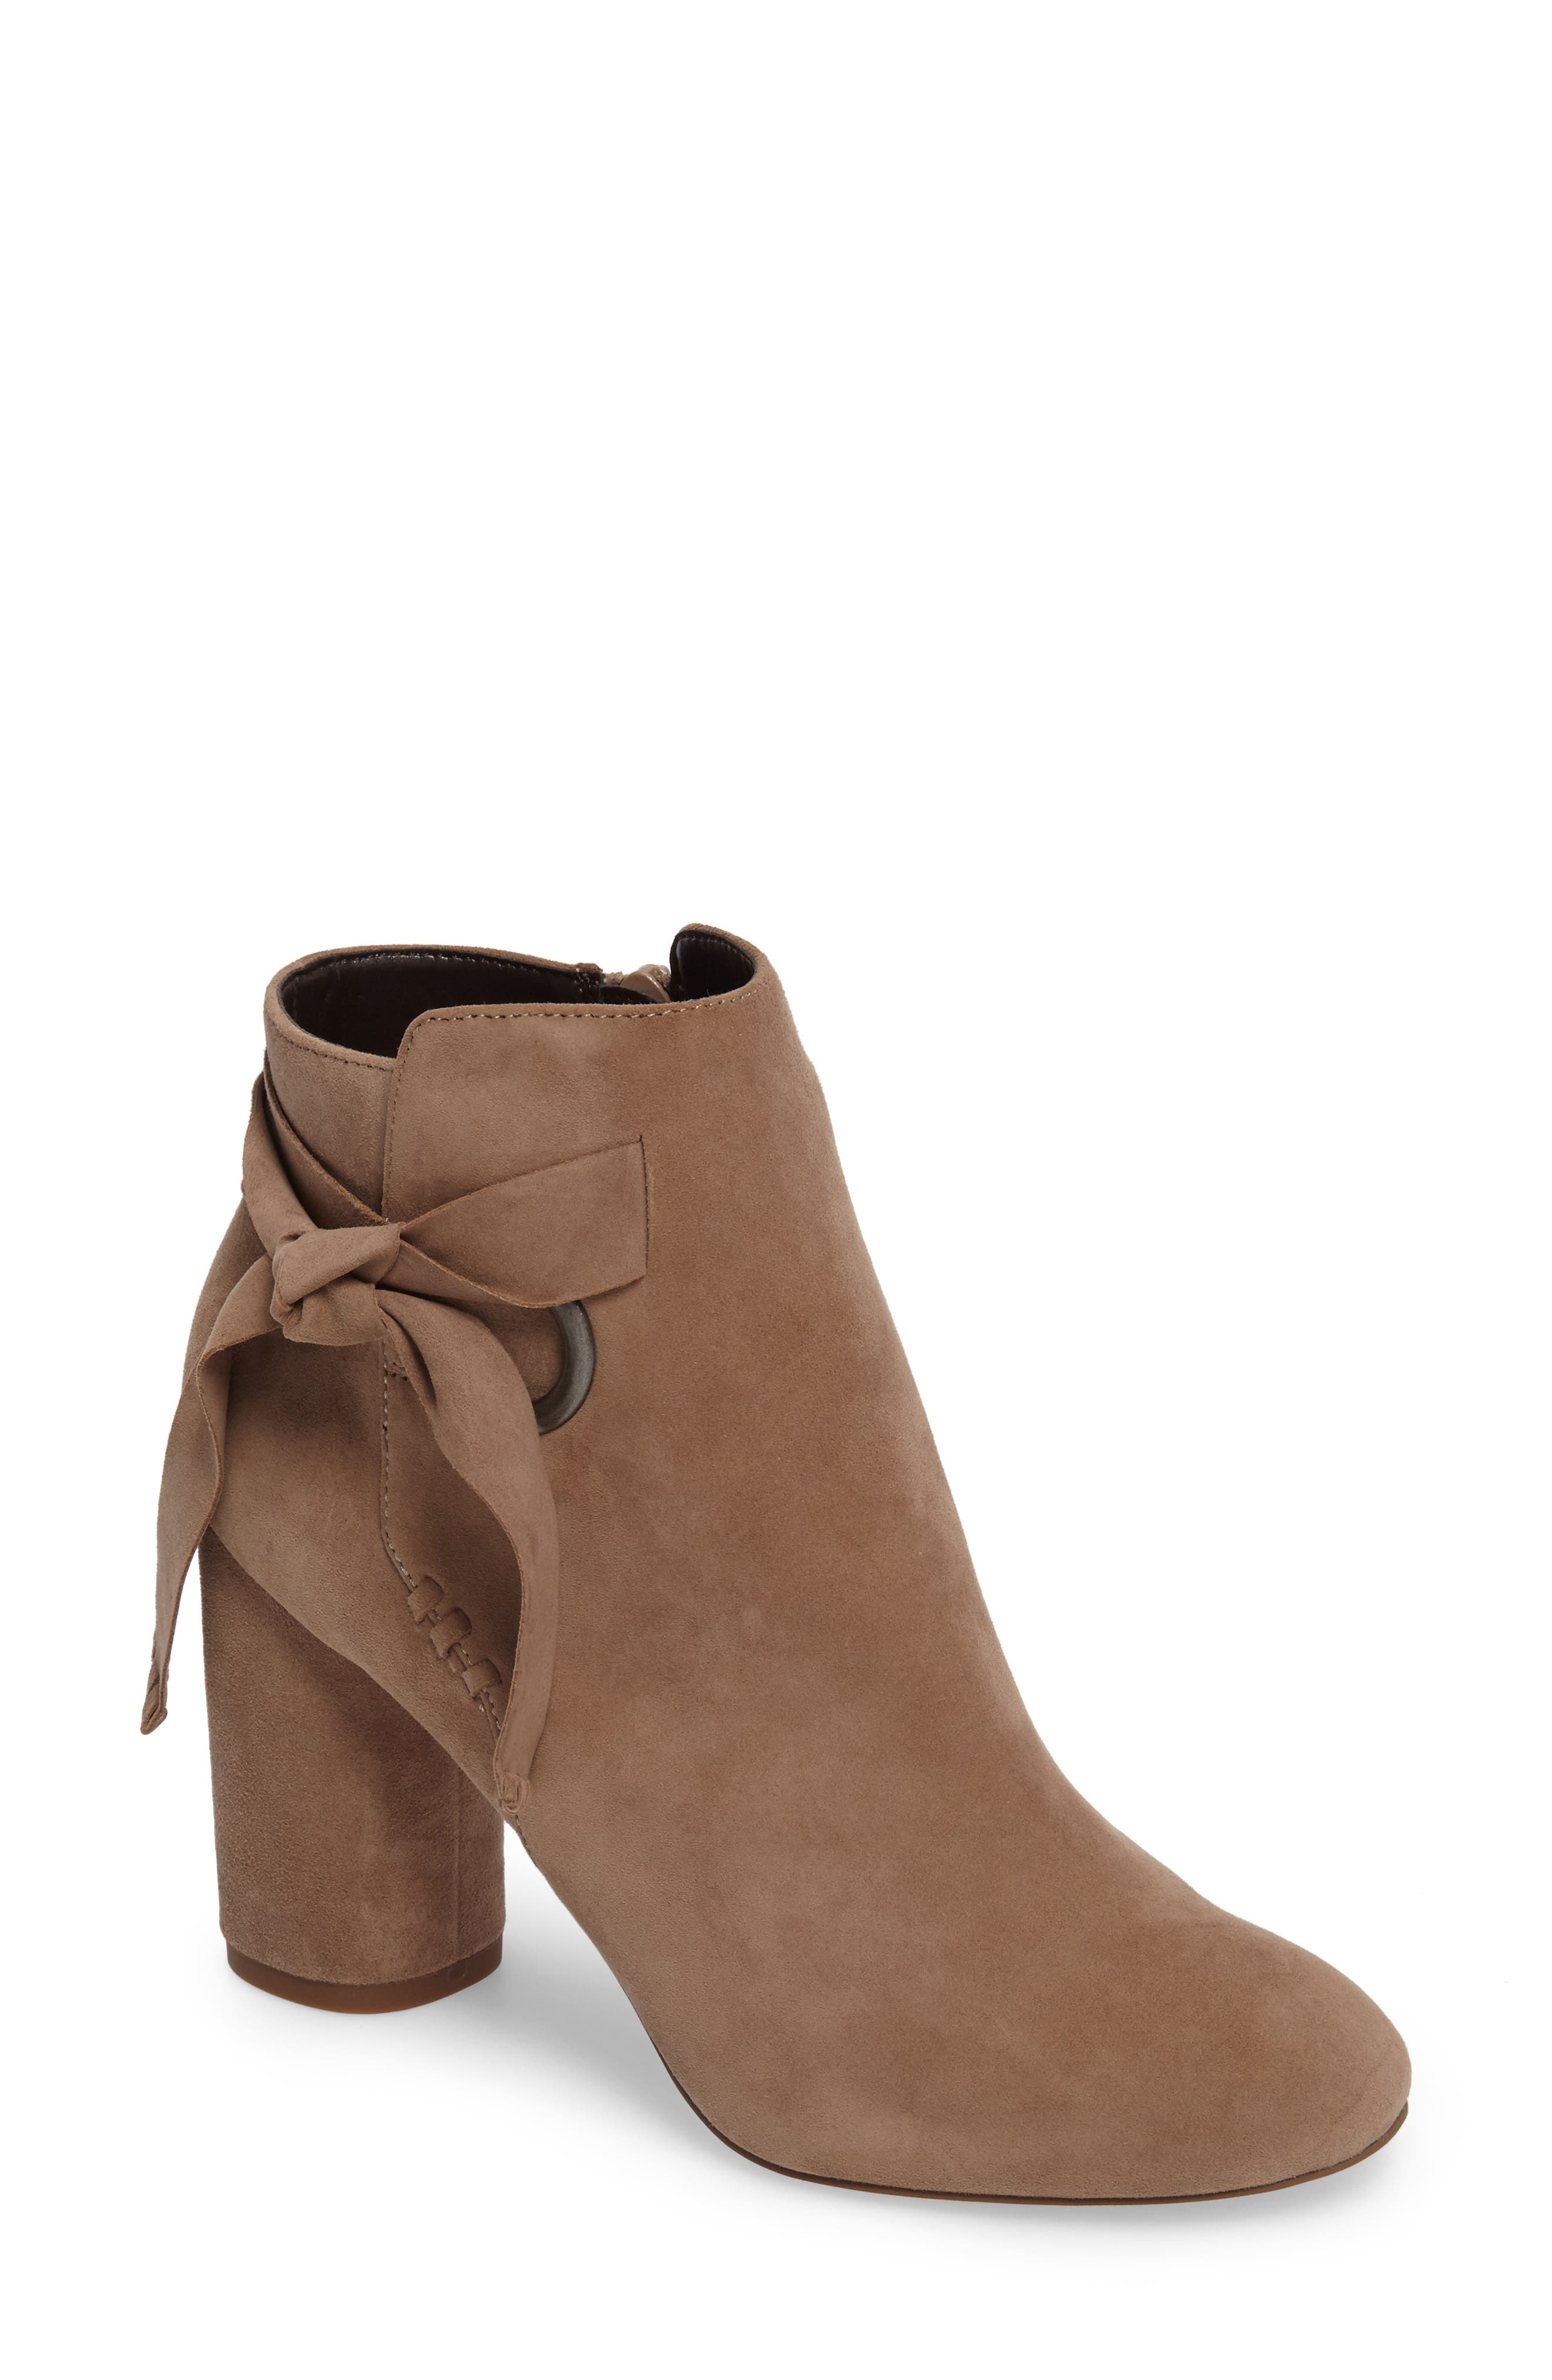 Zella Knotted Bootie,                         Main,                         color, Taupe